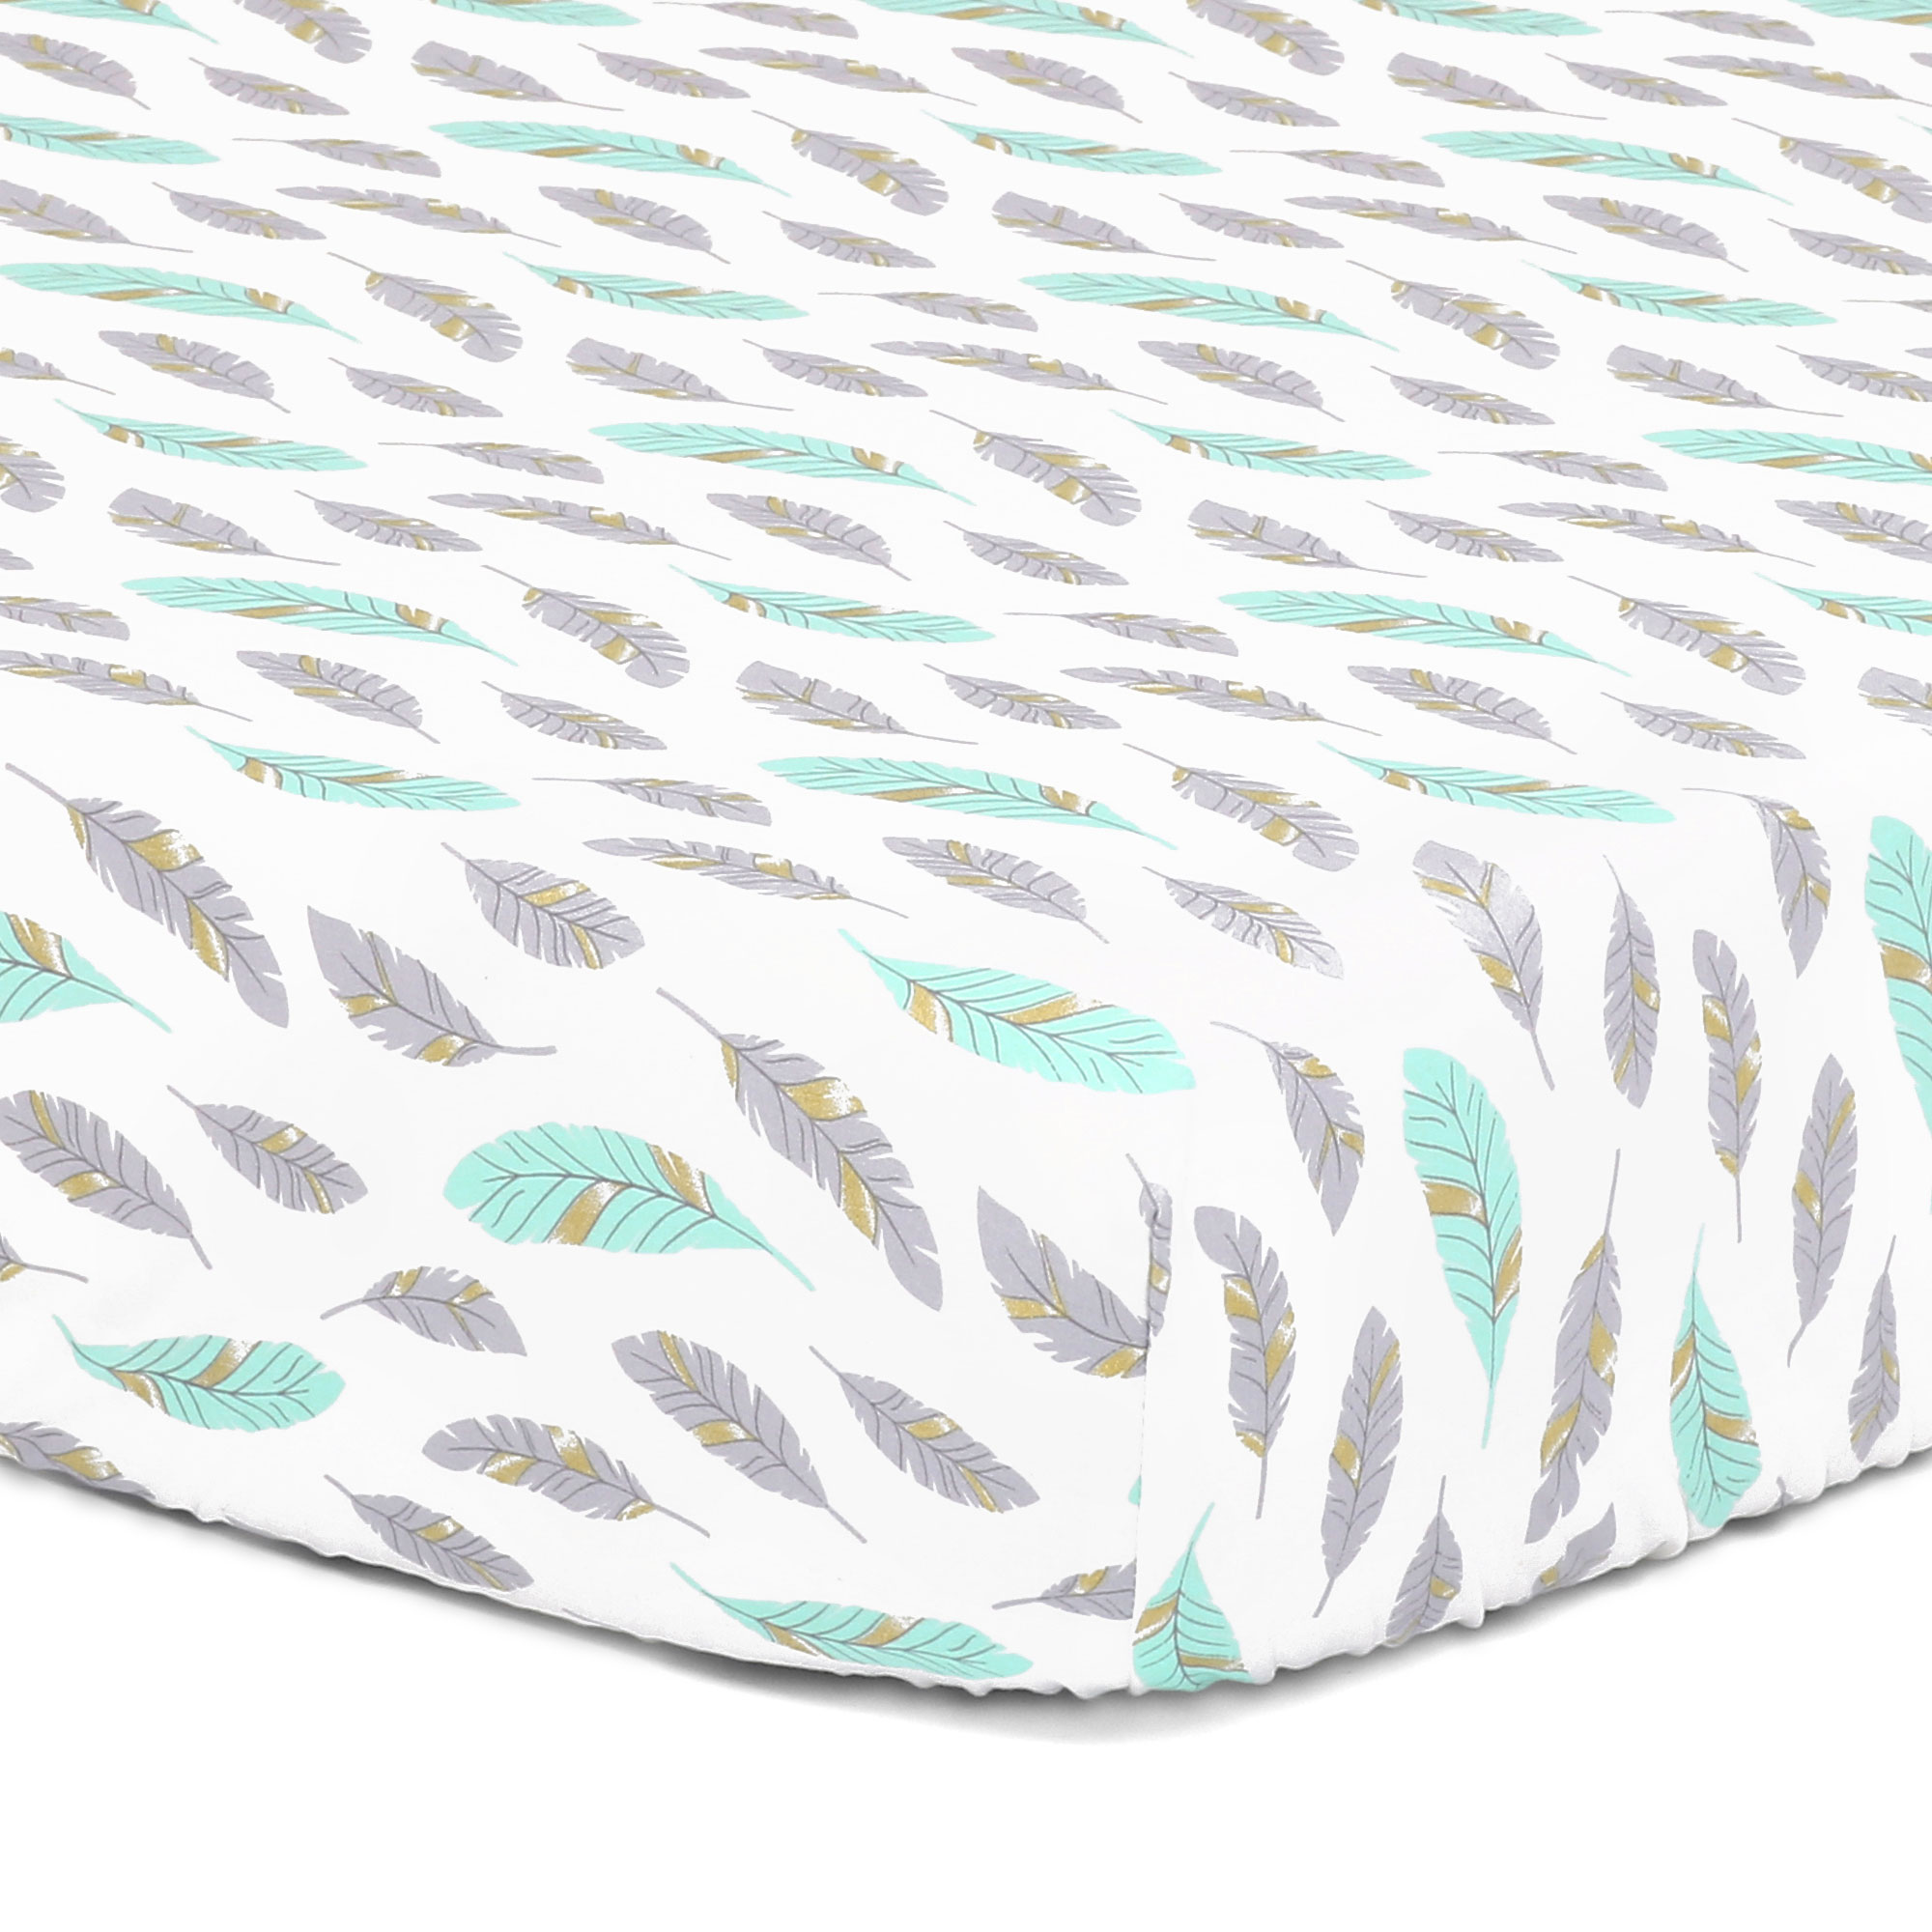 Turquoise Grey and Golden Feathers Fitted Crib Sheet by The Peanut Shell